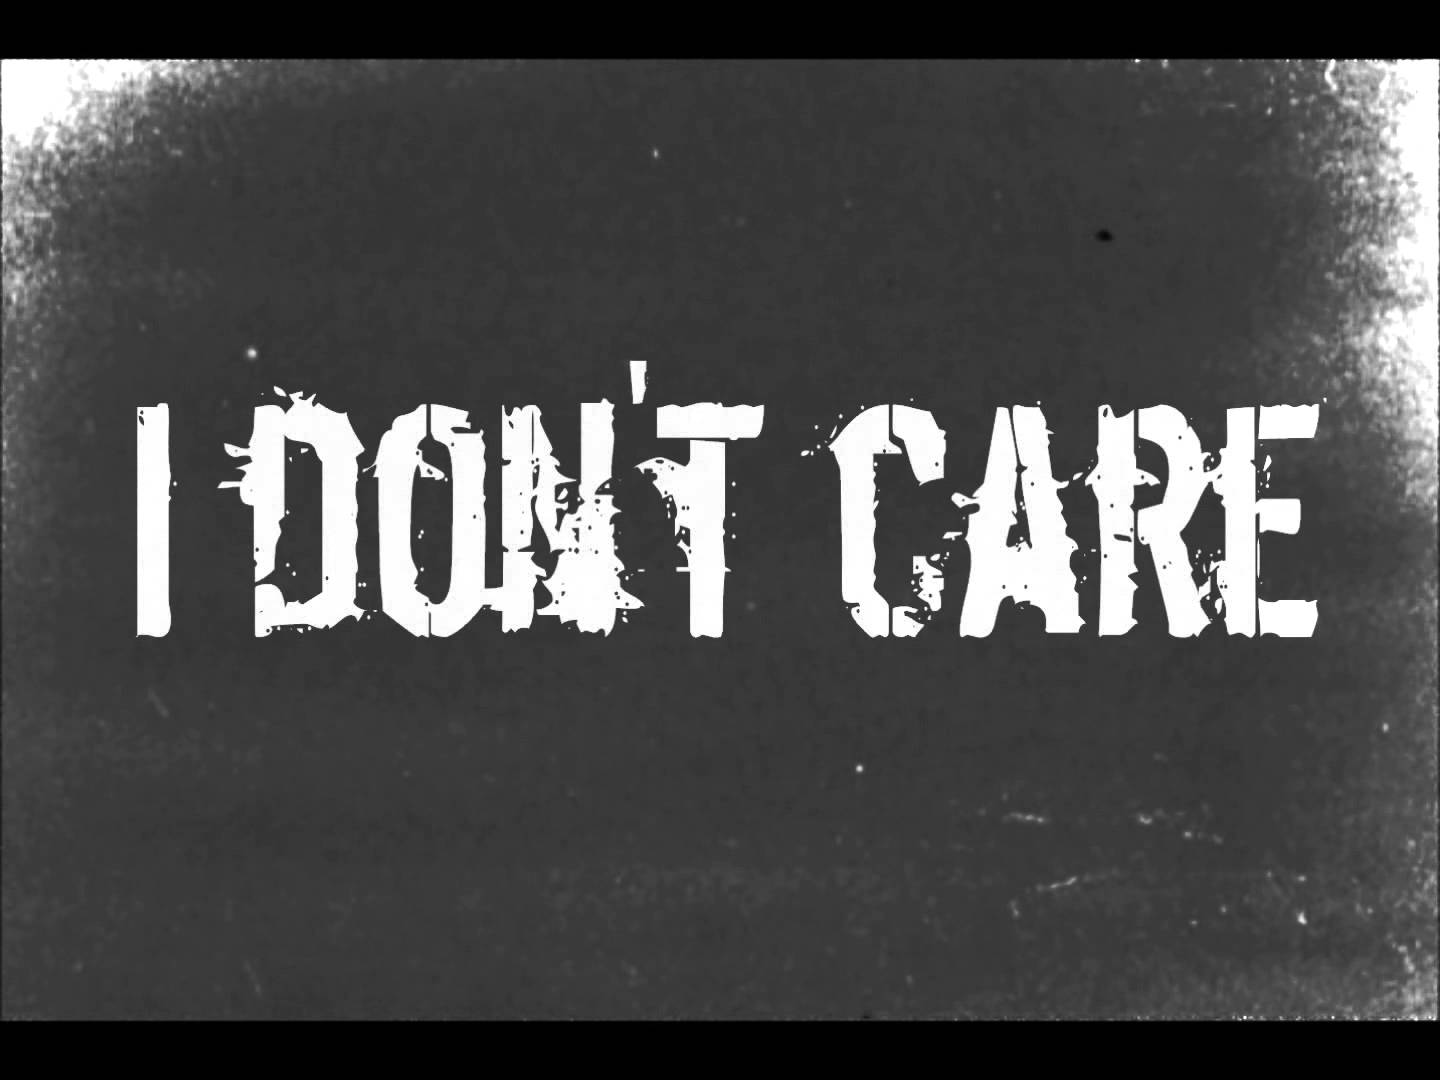 I DON'T CARE ANYMORE | Curt Harding